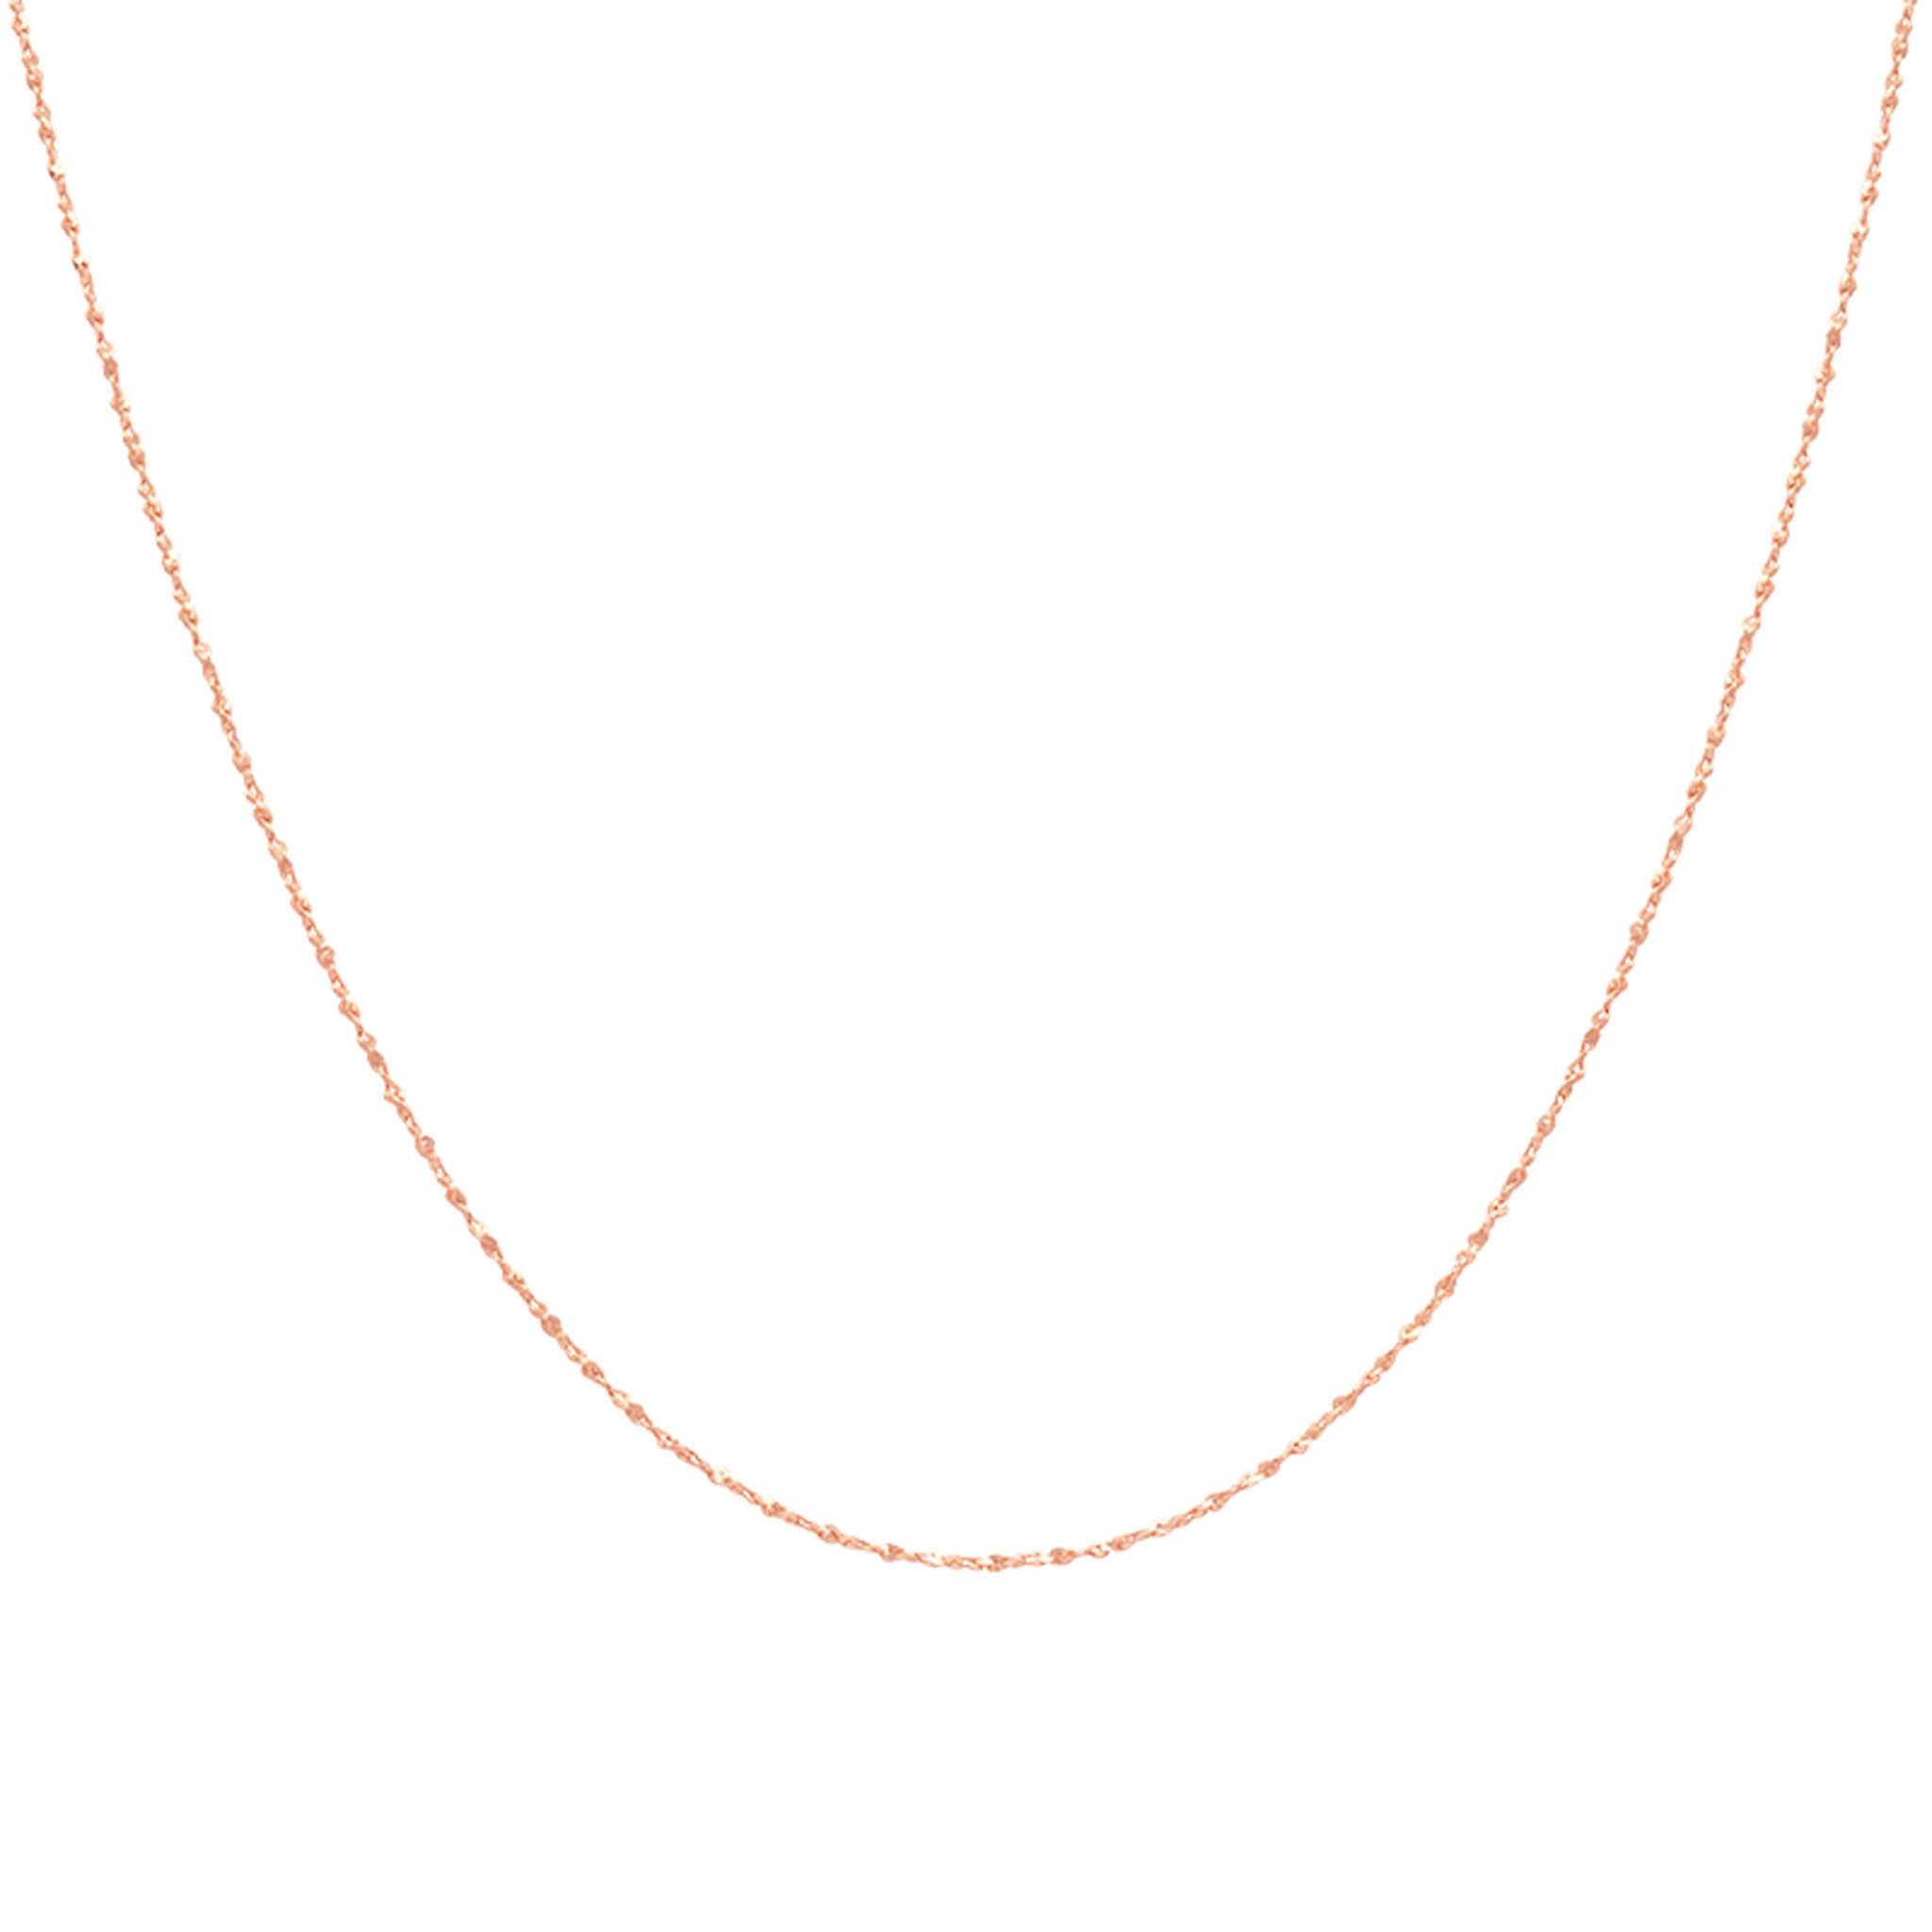 Fine Twist Chain 40cm in Rose Gold